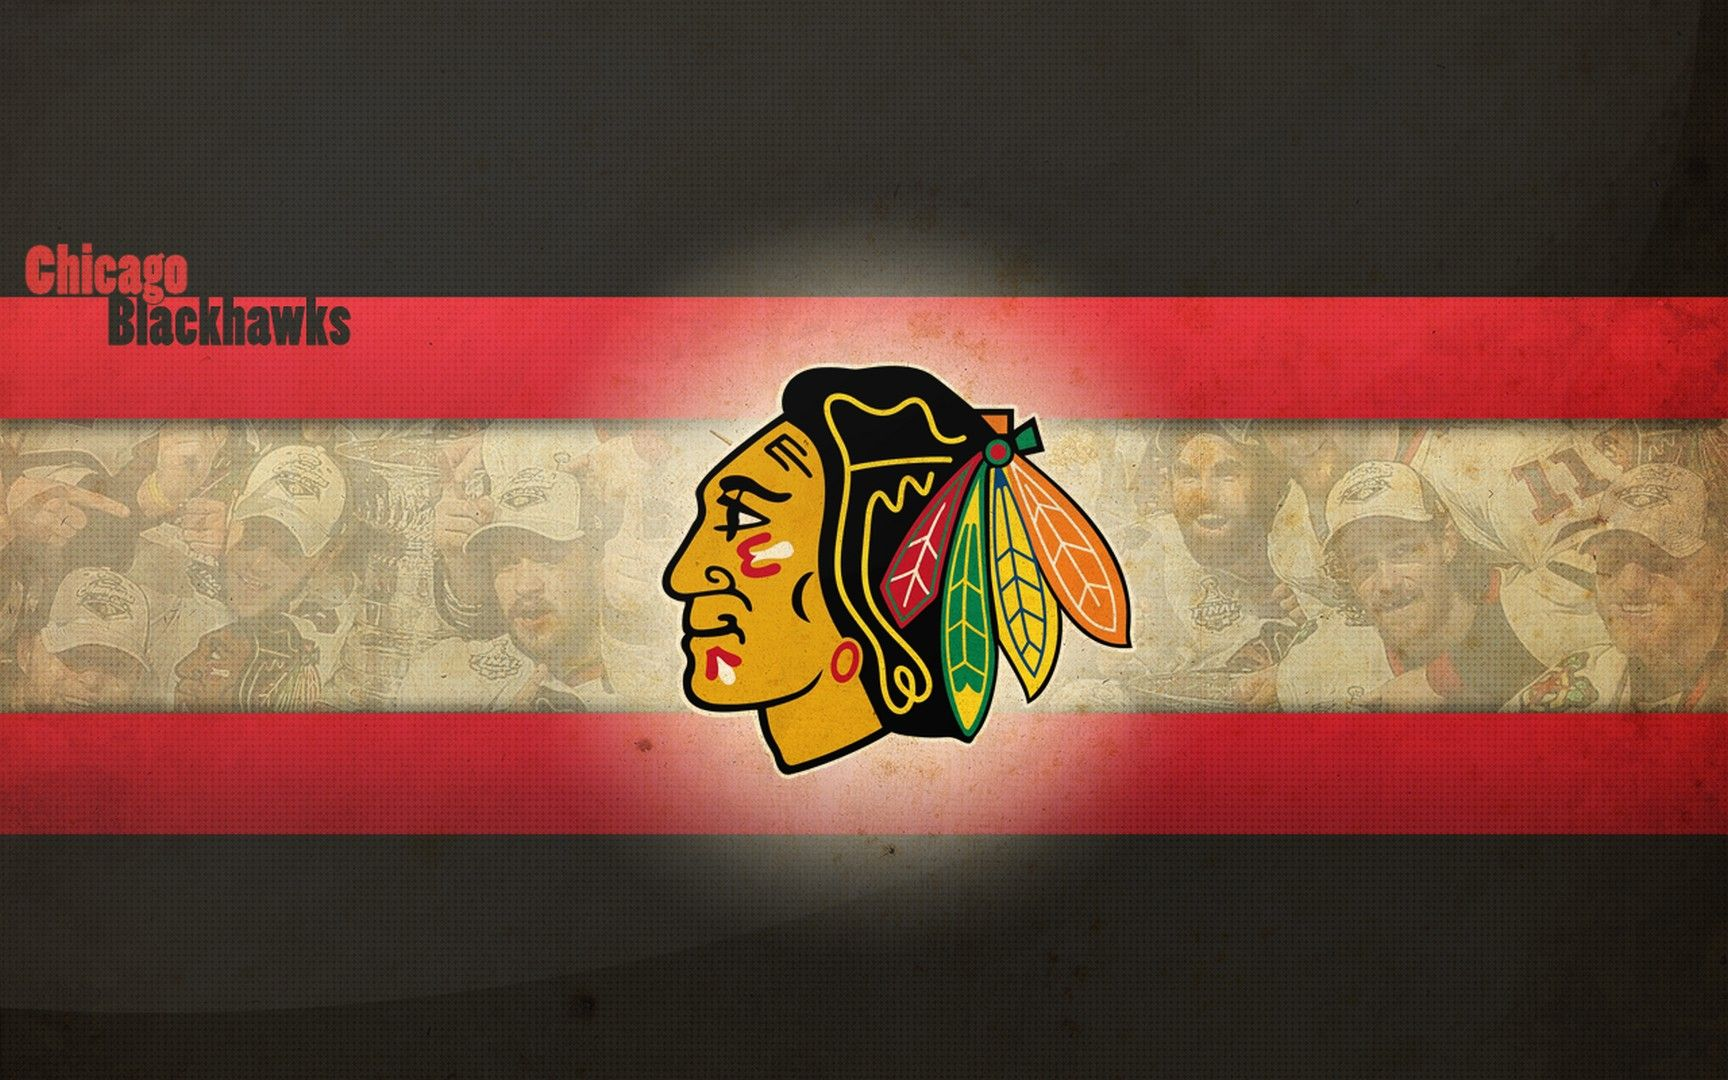 Blackhawks Macbook Wallpaper Chicago Blackhawks Wallpaper Chicago Blackhawks Blackhawks